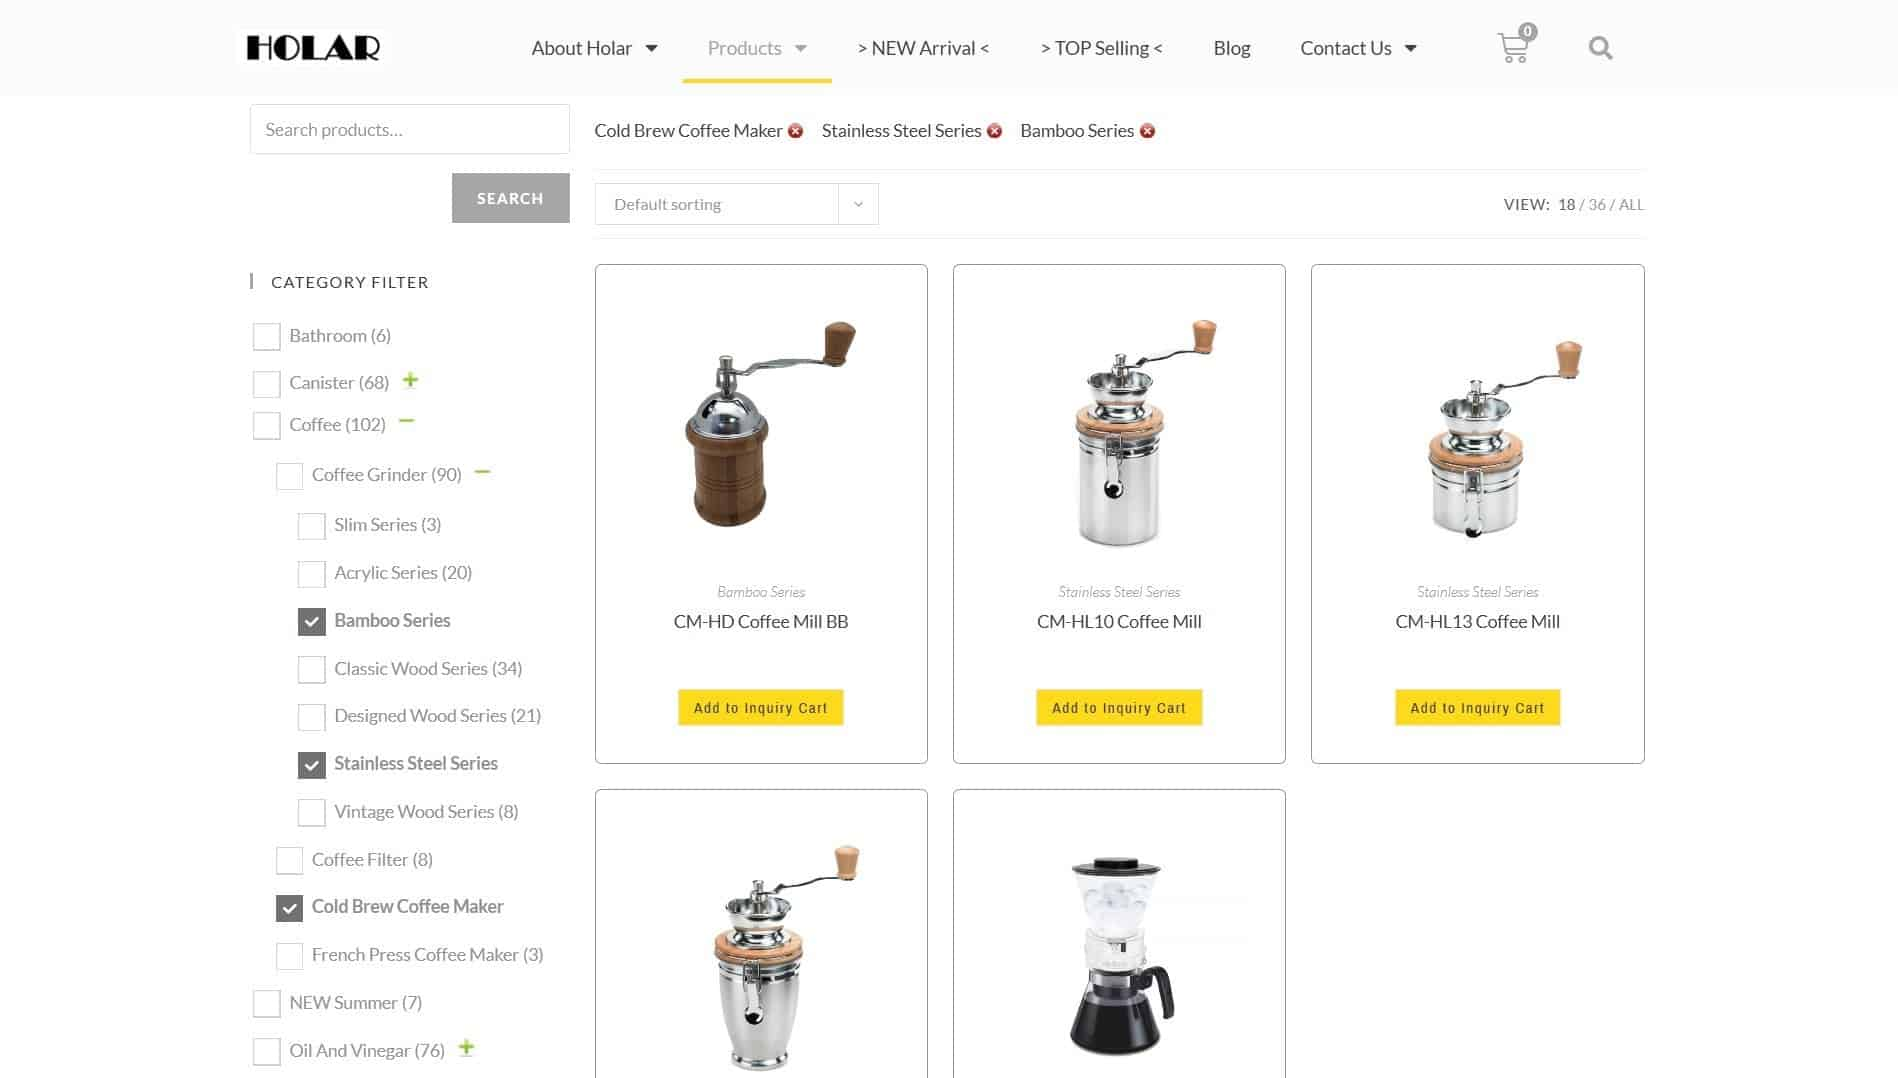 B2B Inquiry Showcase - Holar Taiwan Kitchenware Houseware Expert Supplier - Product Check Filters